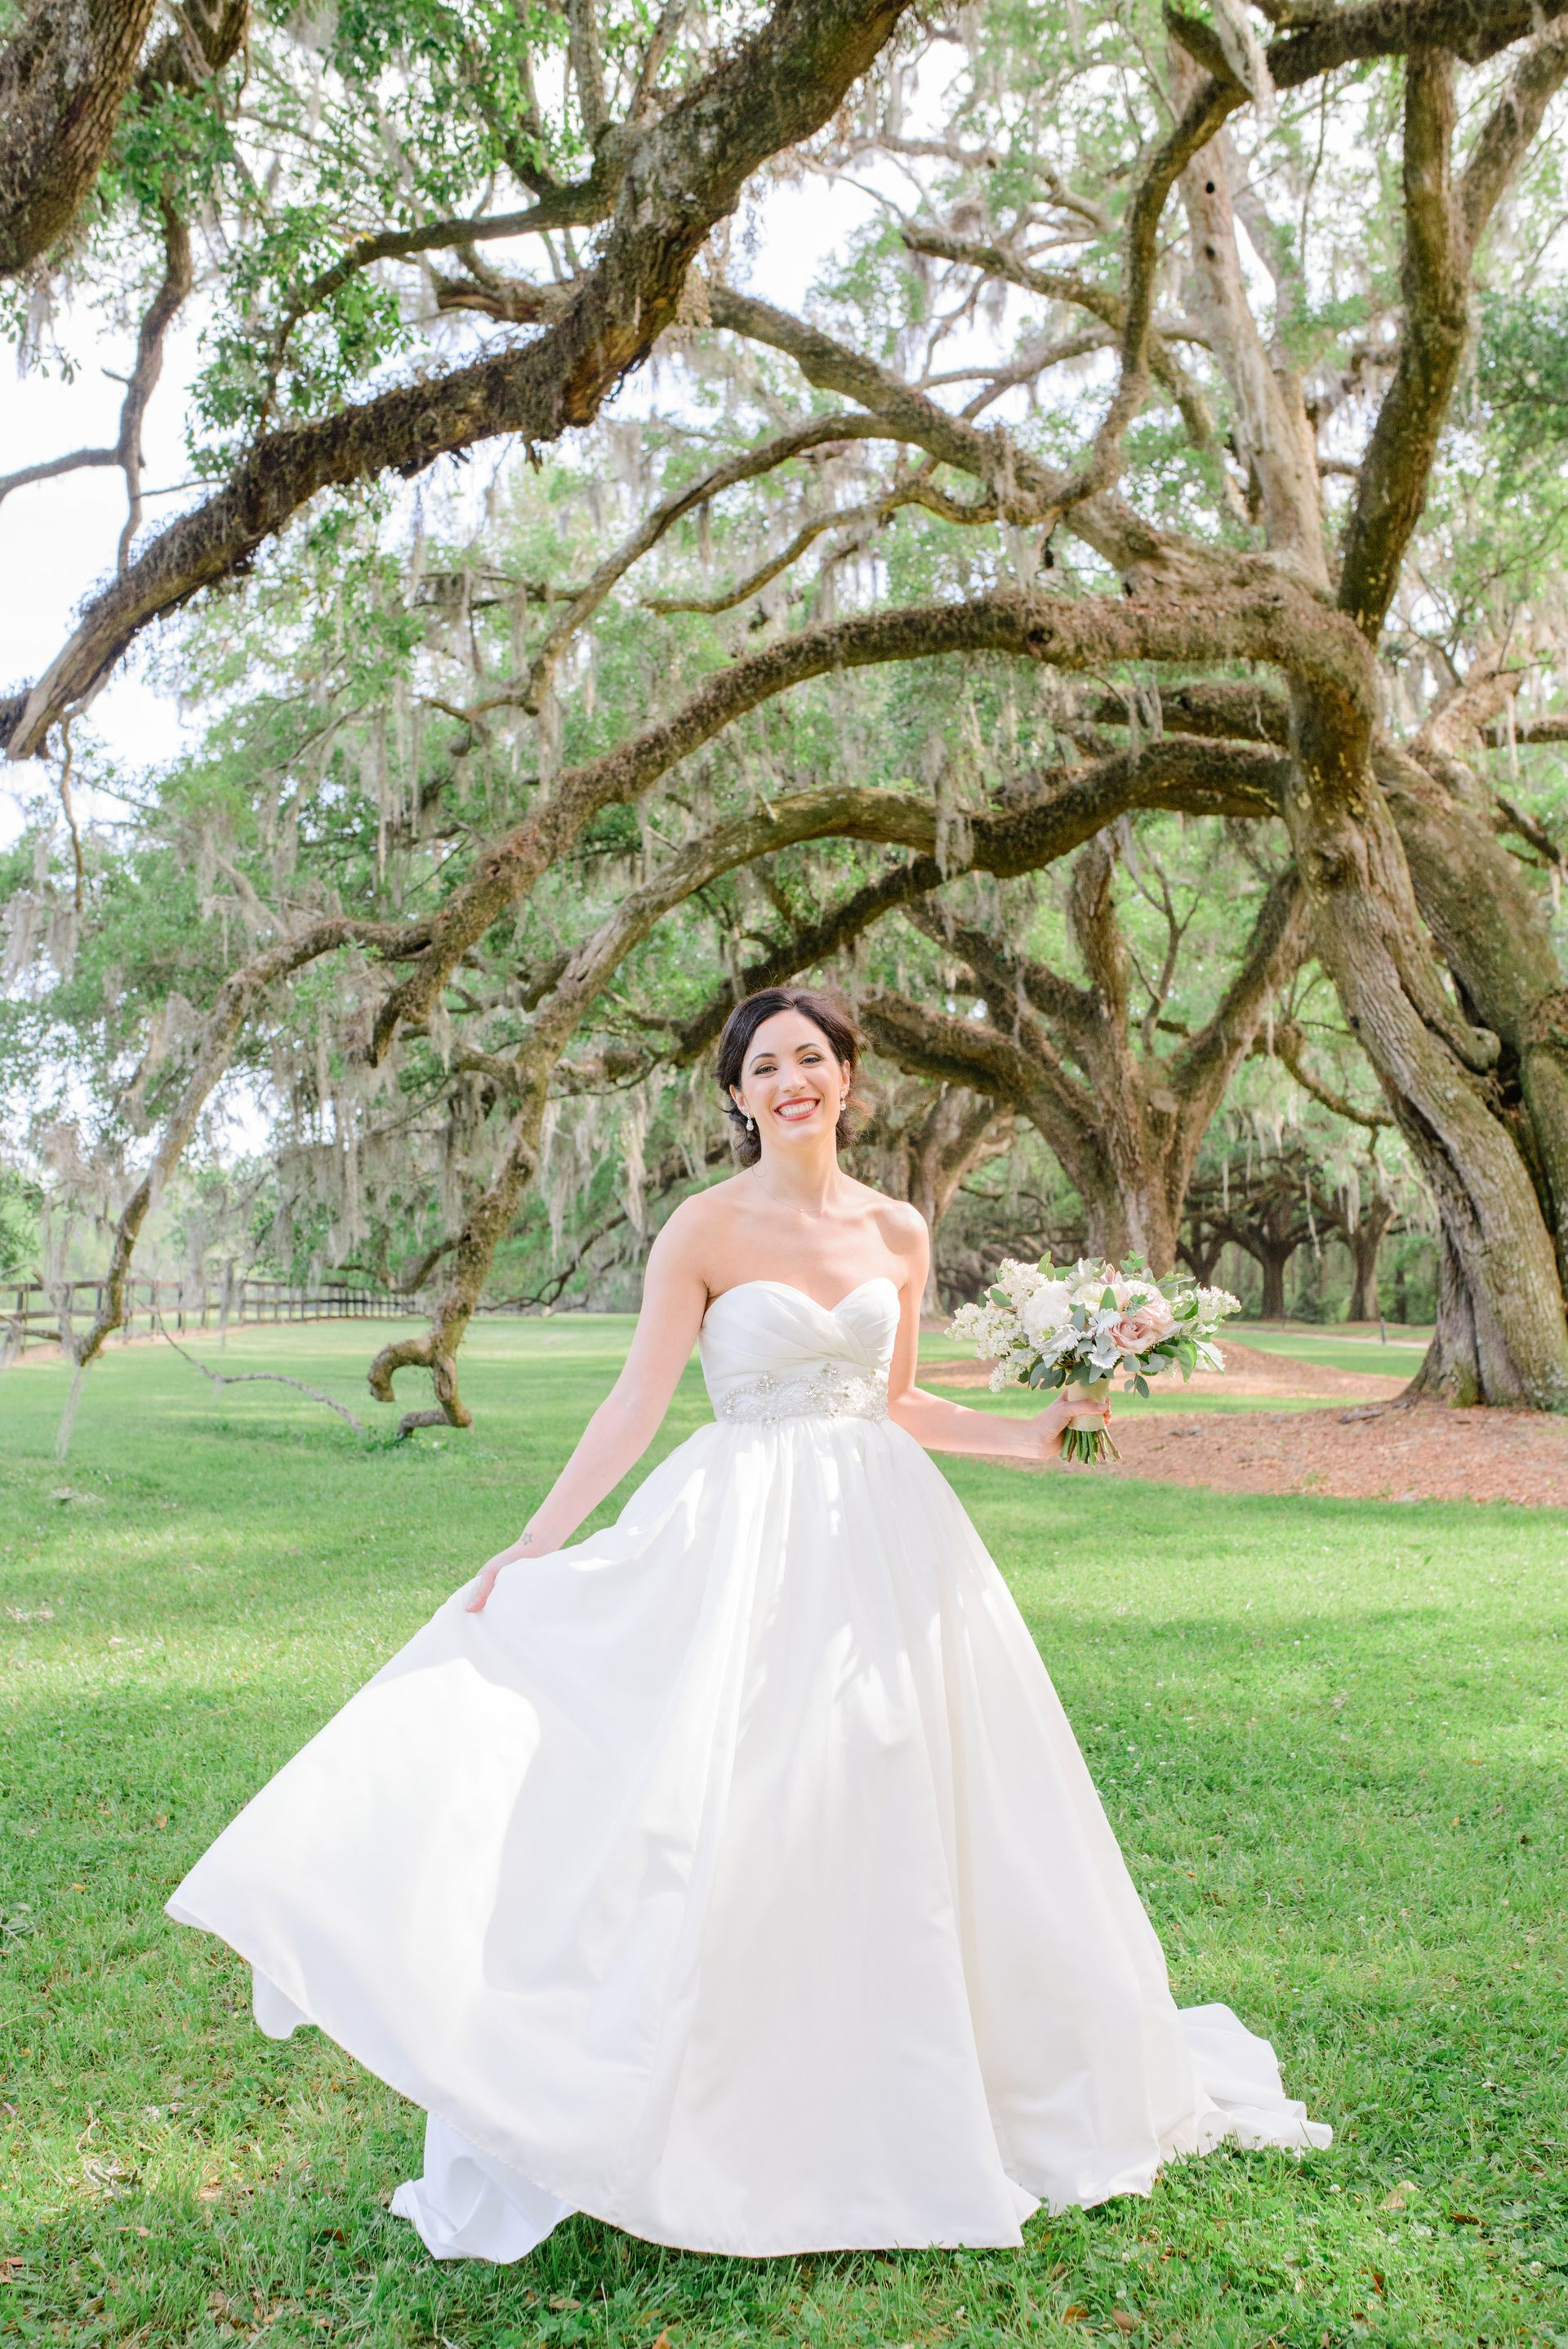 The Smarter Way to Wed   Southern bride, Strapless wedding dresses ...